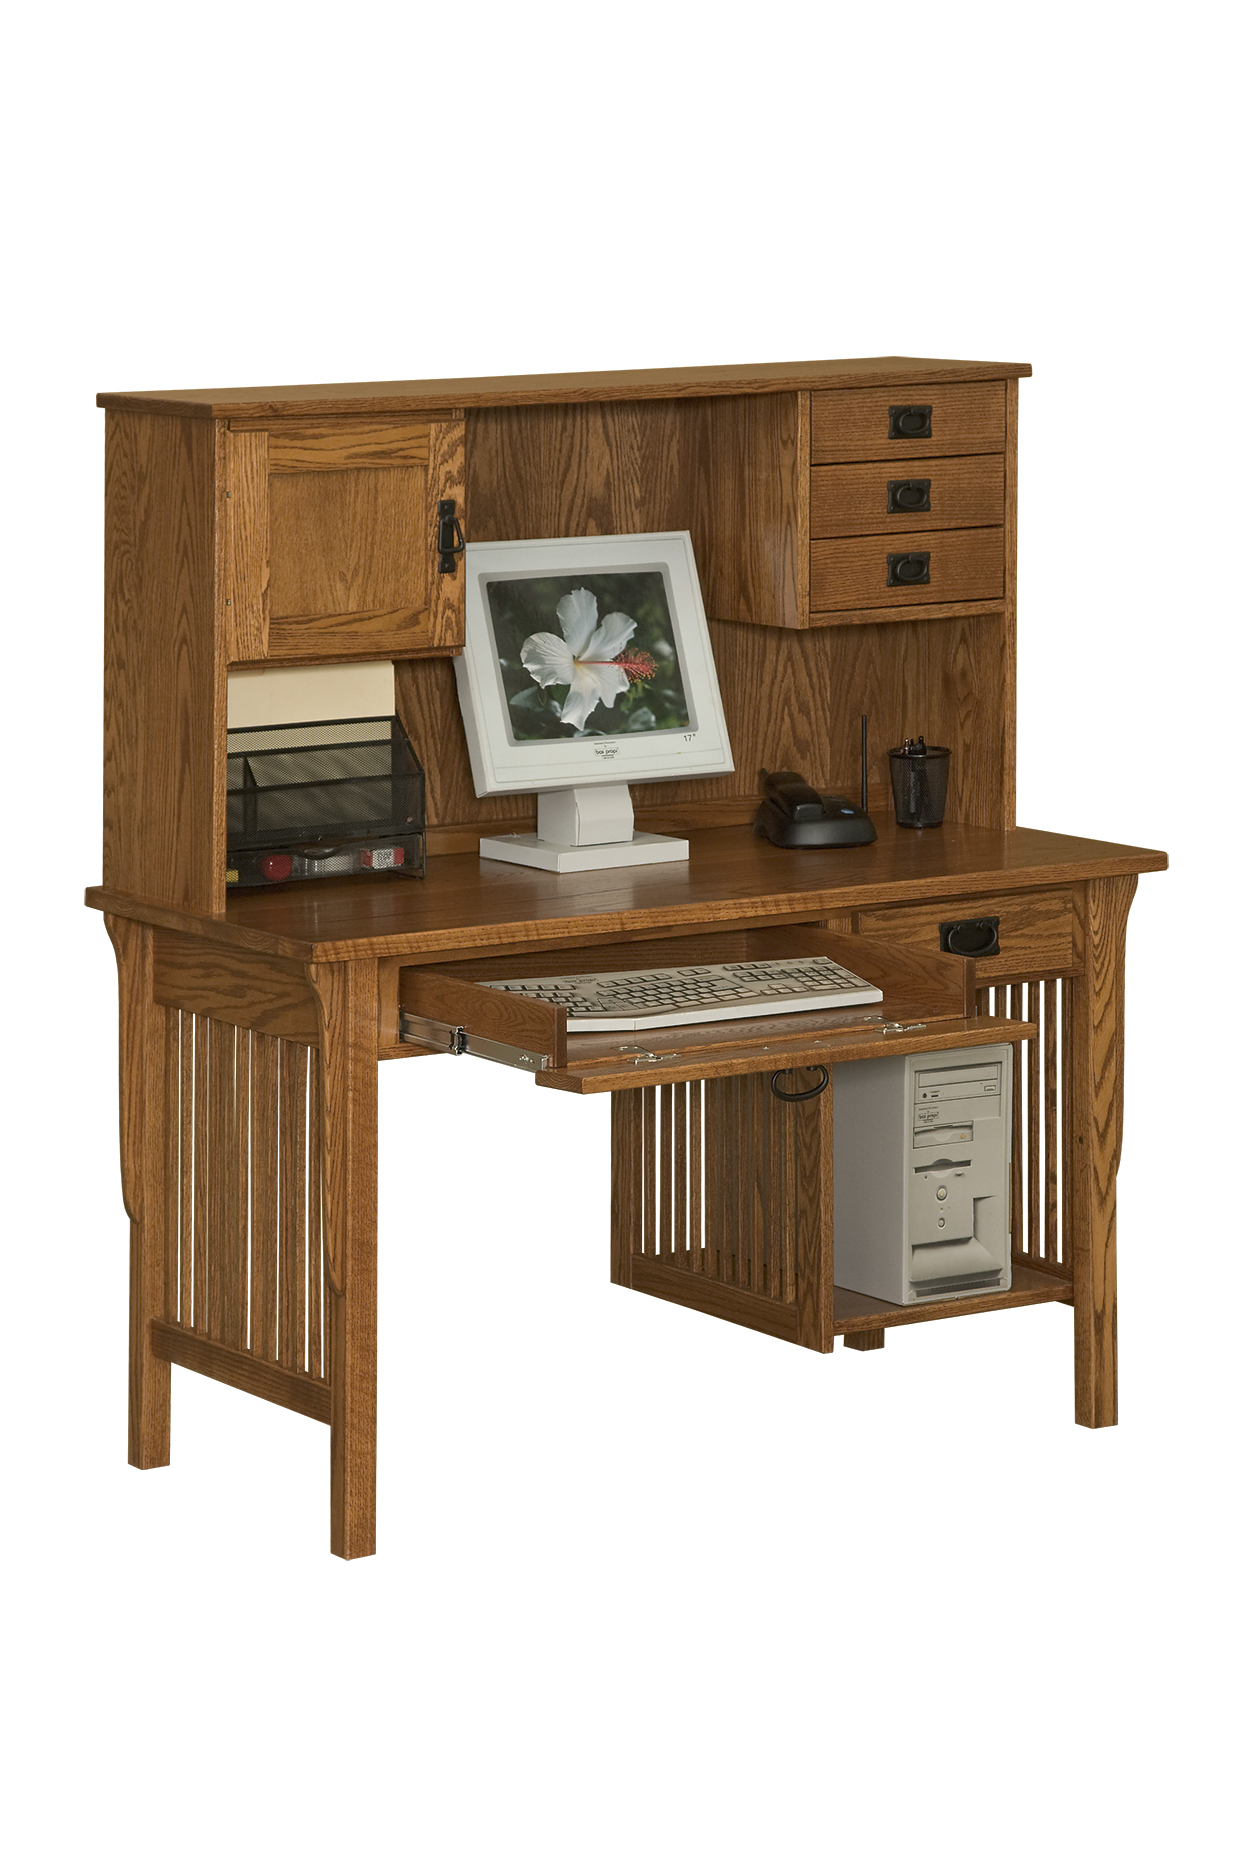 Computer Desk - Amish Furniture Connections - Amish Furniture